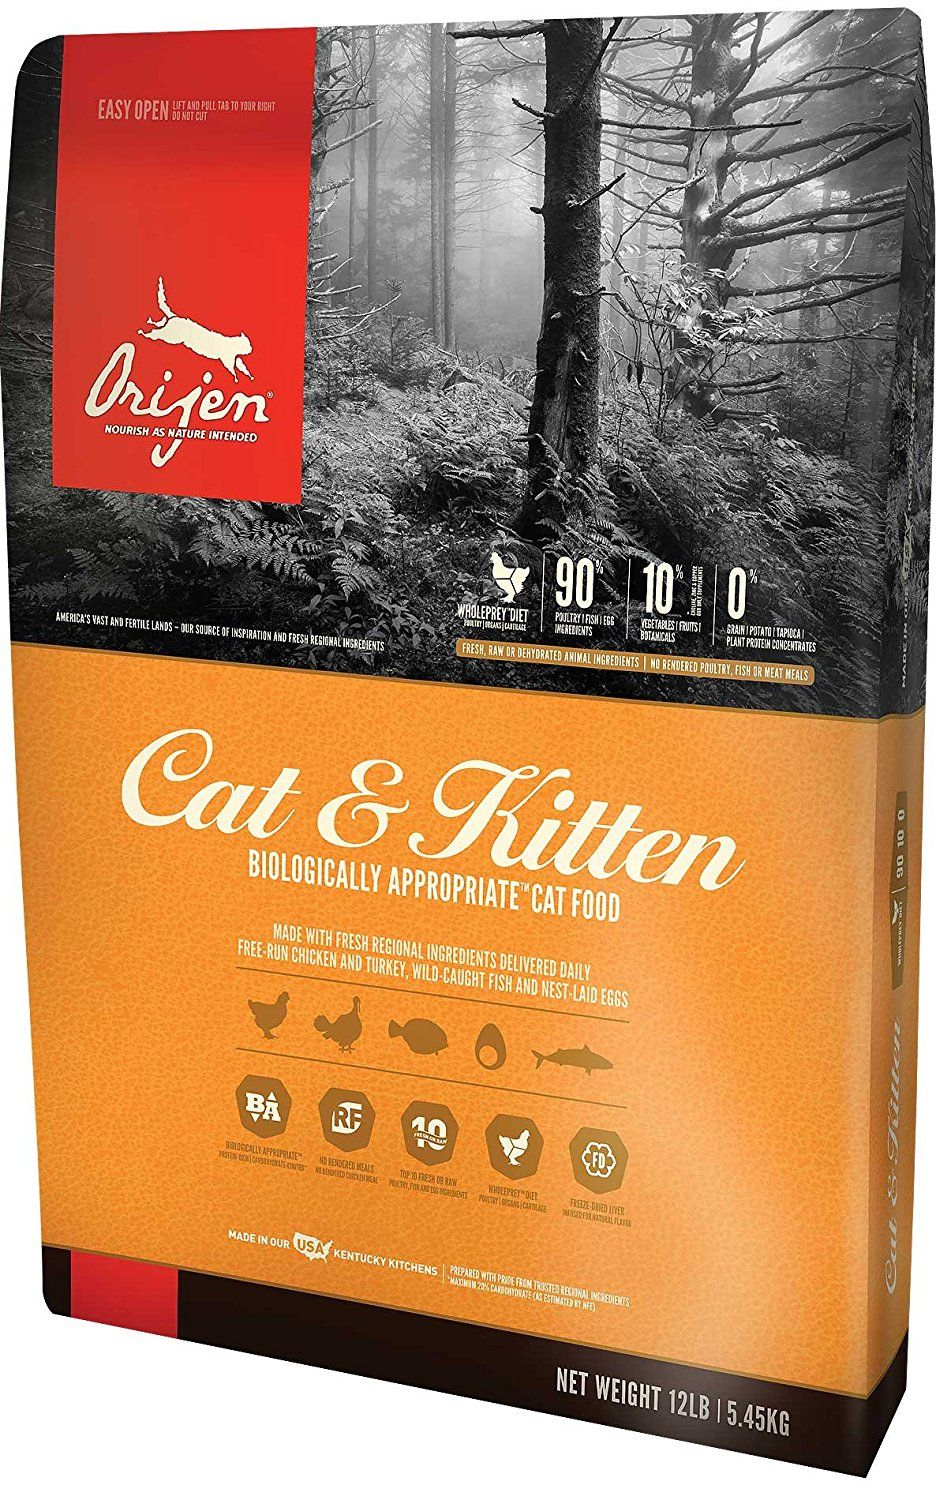 Orijen Cat And Kitten Food Review